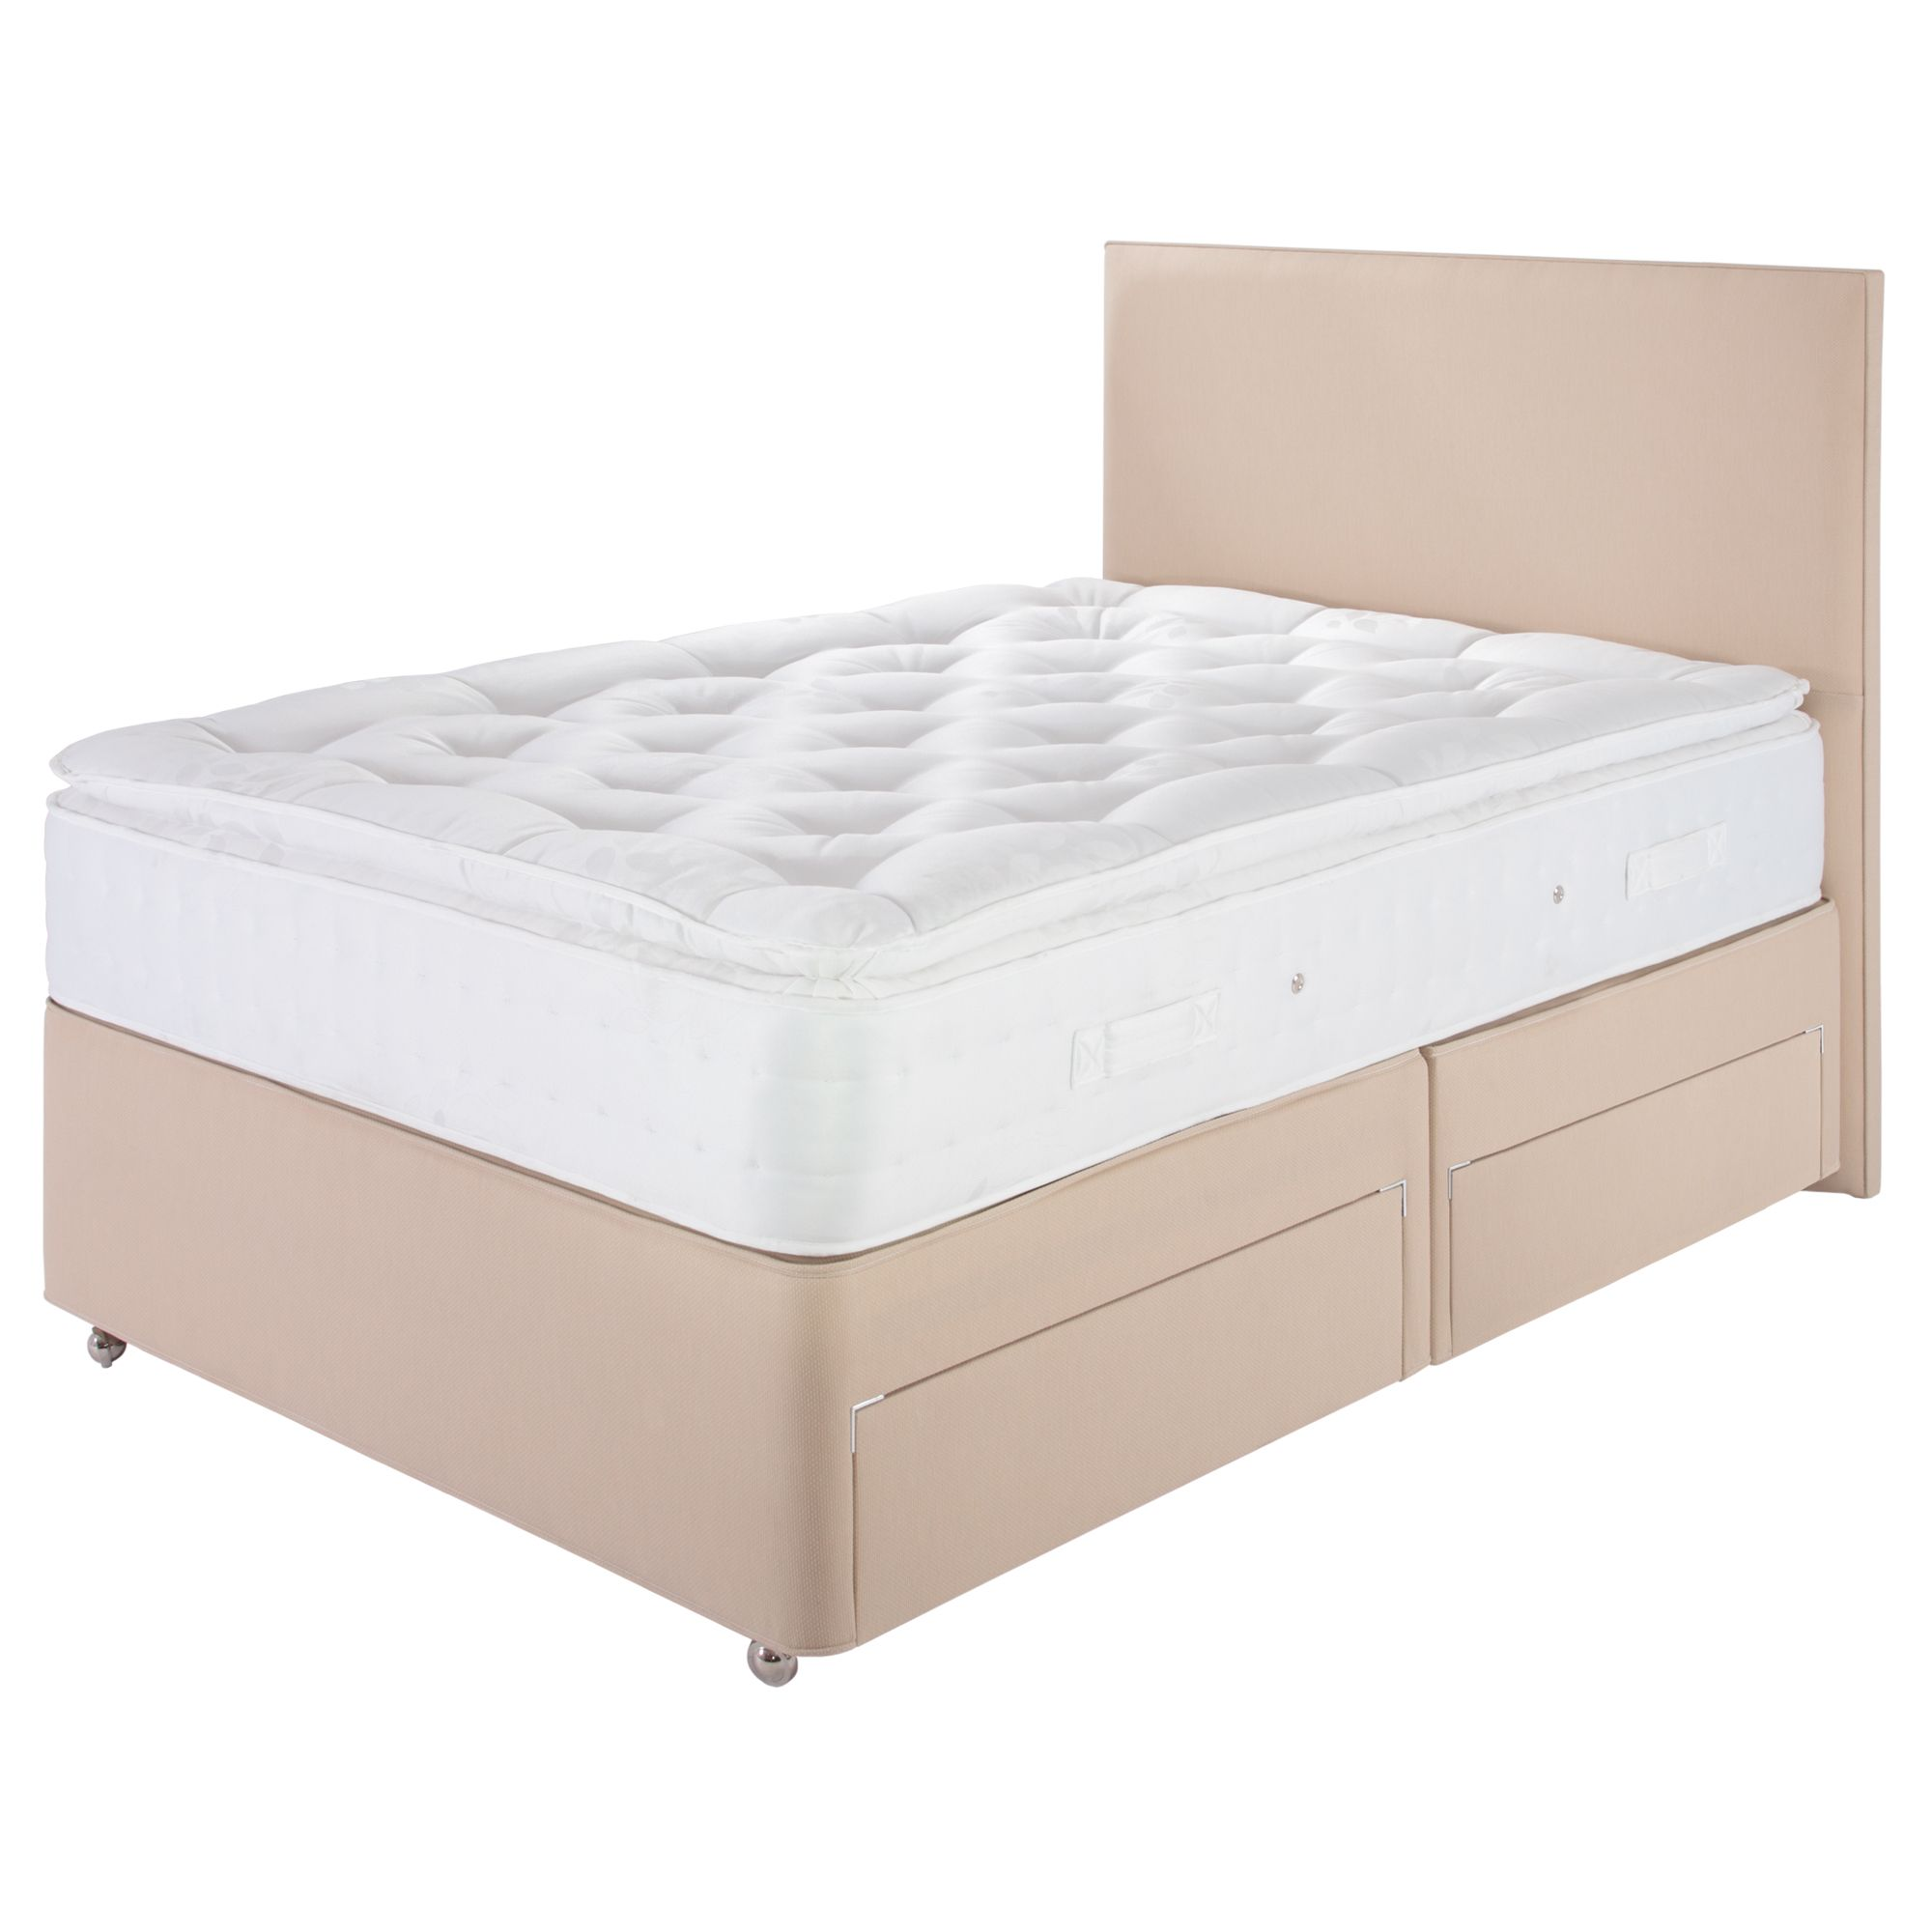 Home And Garden Furniture Airsprung Double Fabric Non Storage Divan Bed Plus Headboard